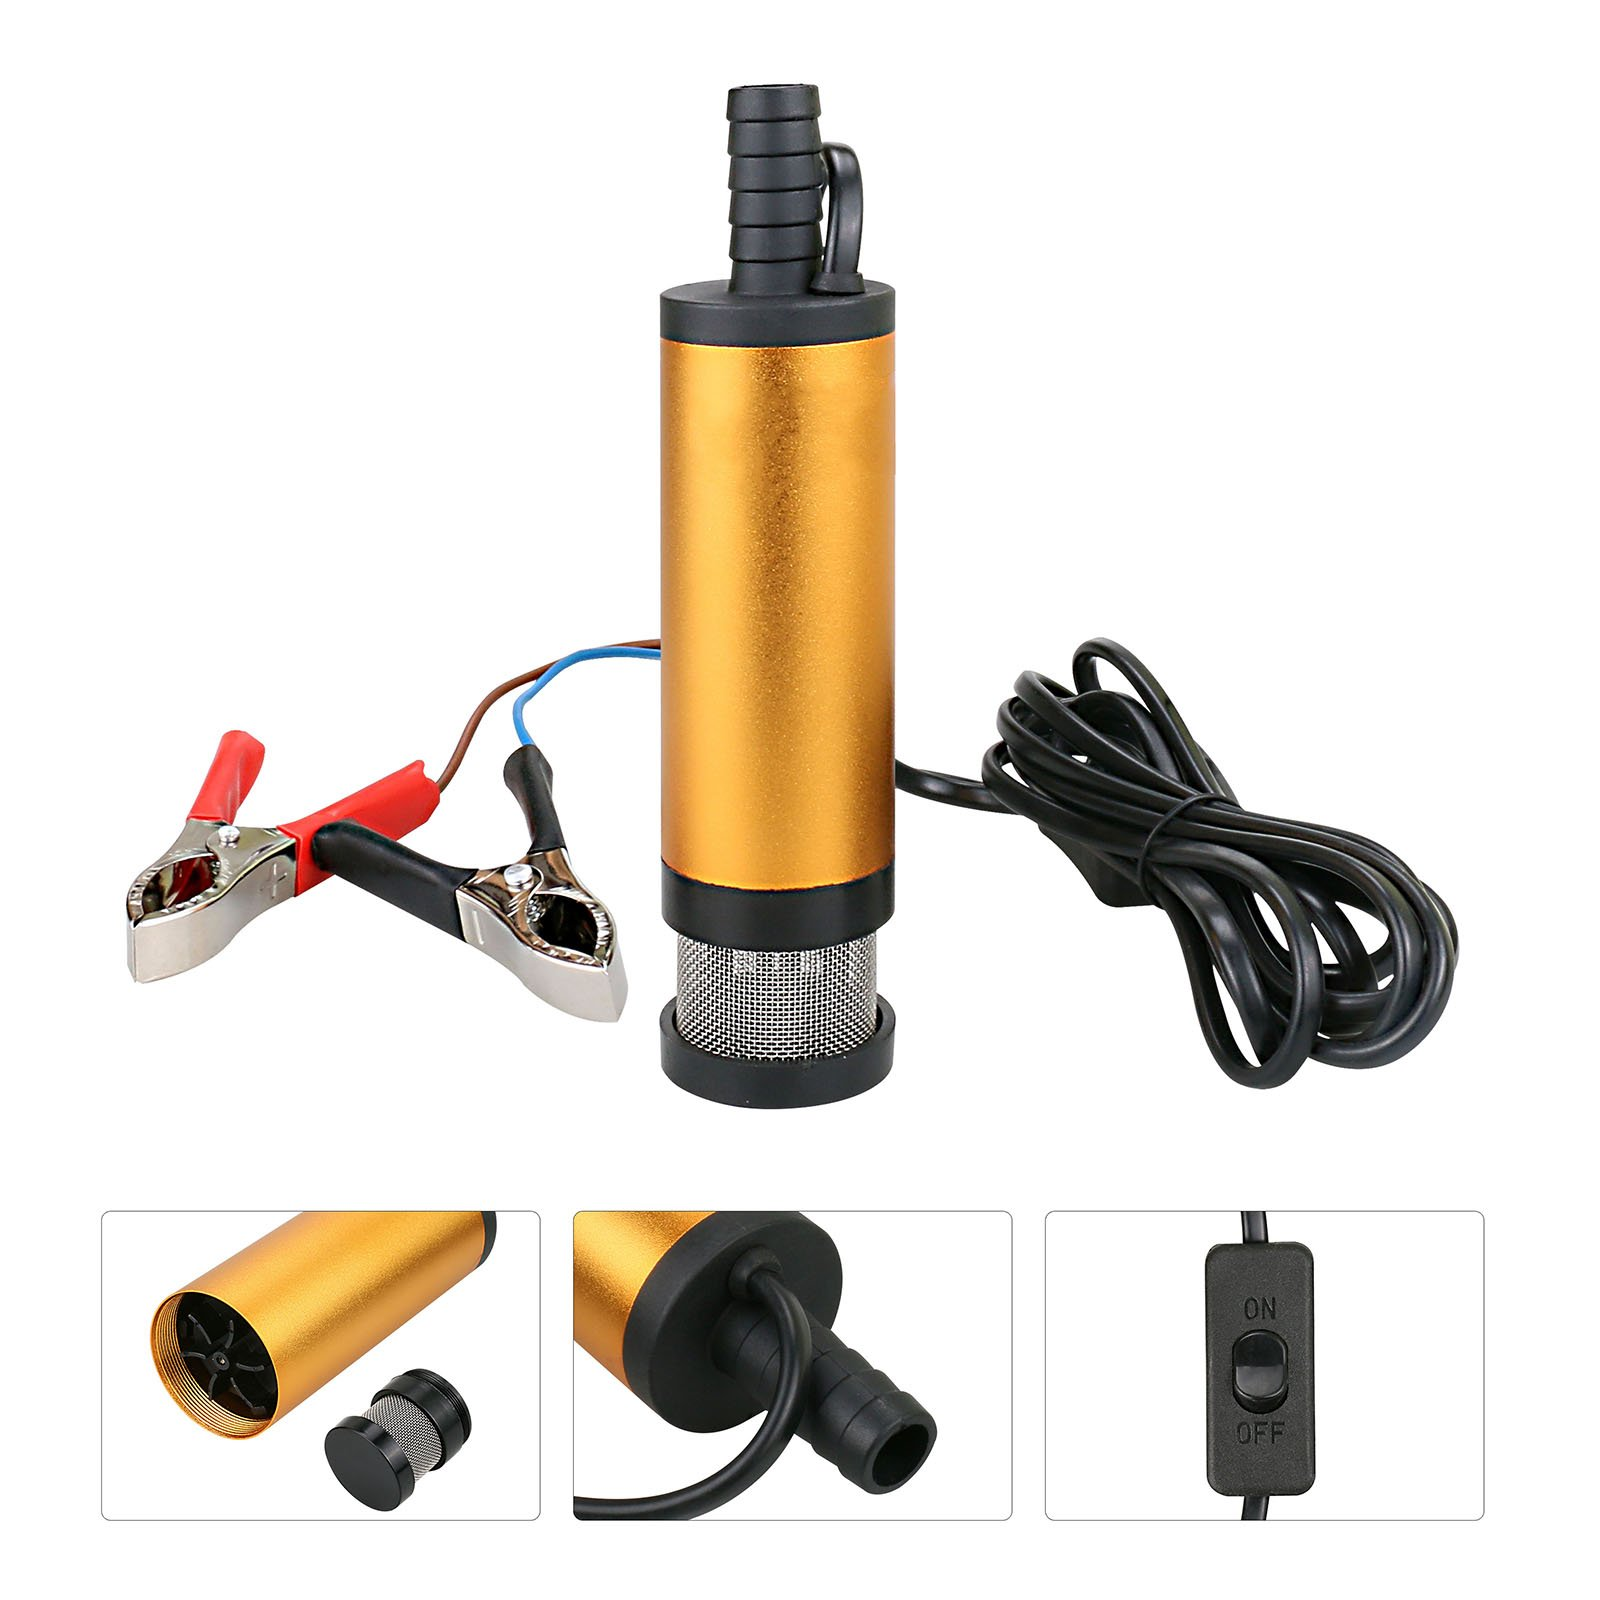 DC 12V Diesel Water Oil Fuel Transfer Pump For Car Truck Camping Submersible Motorbike 8500r/min